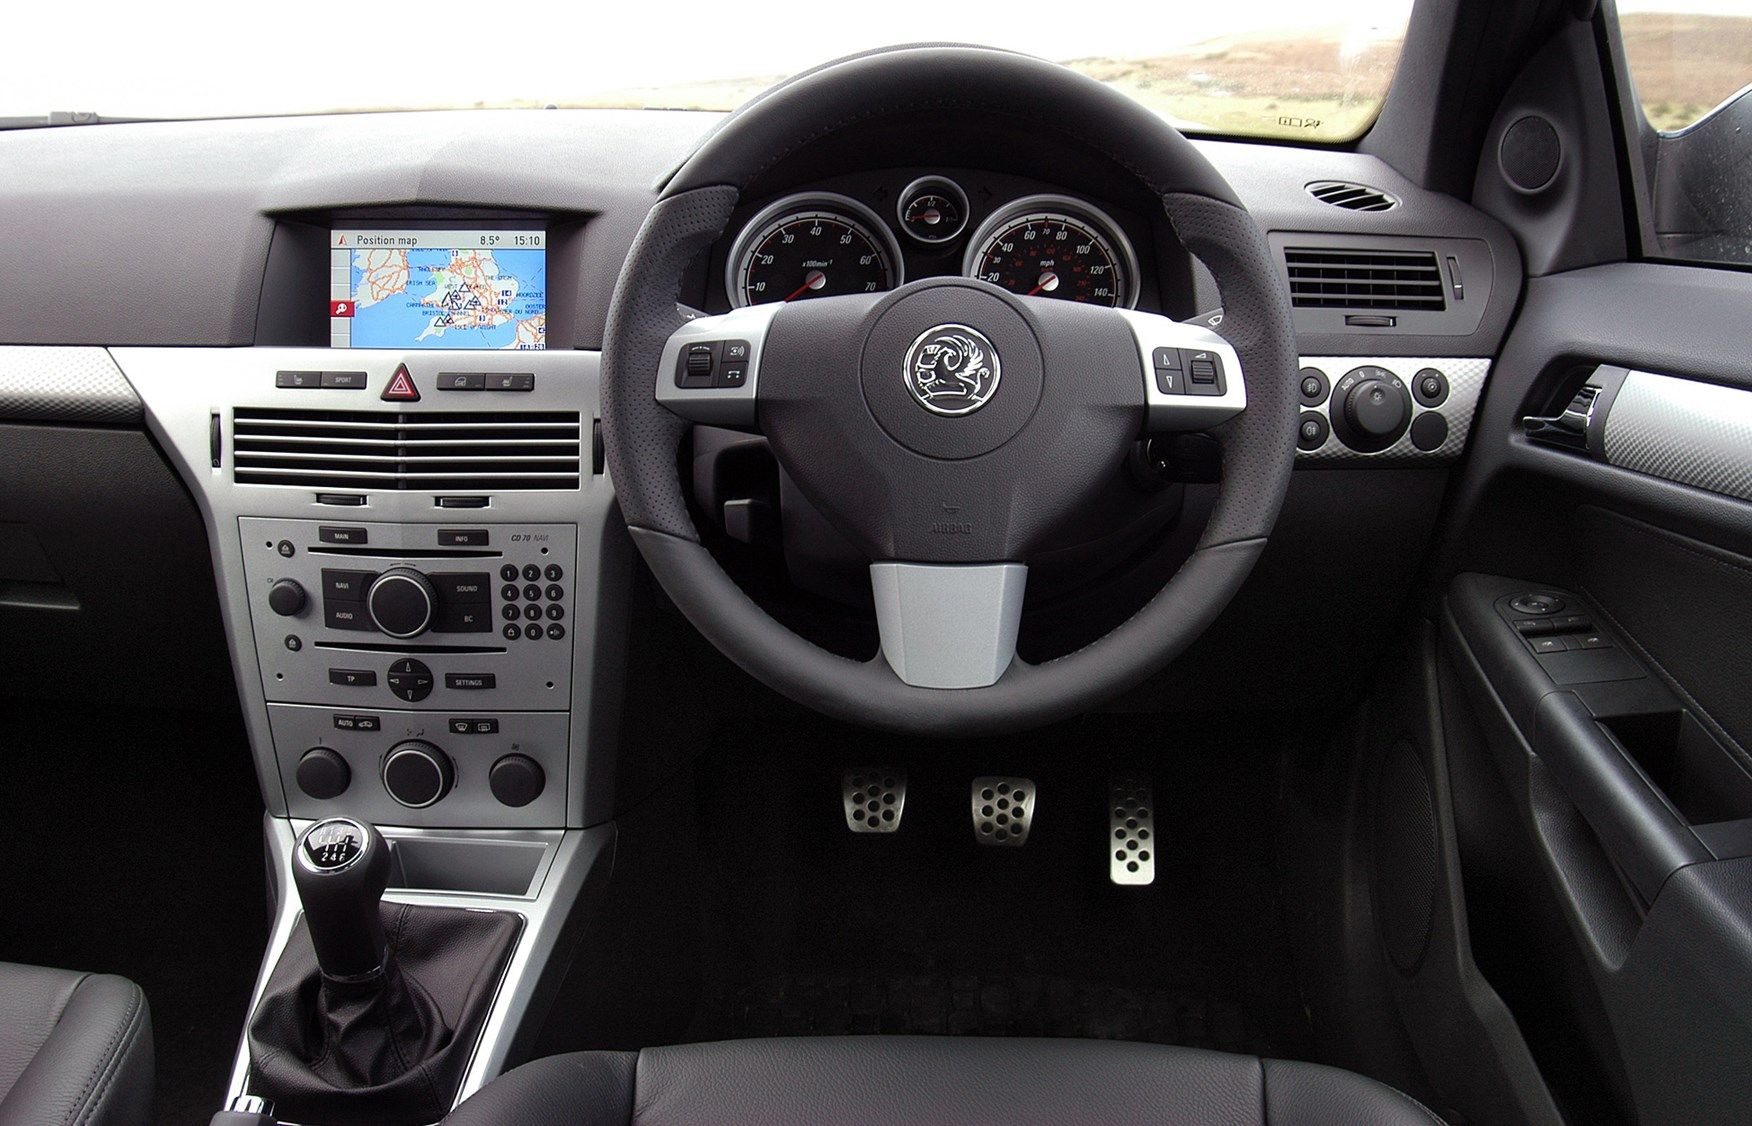 View All Images Of The Vauxhall Astra Sport Hatch (05 10)